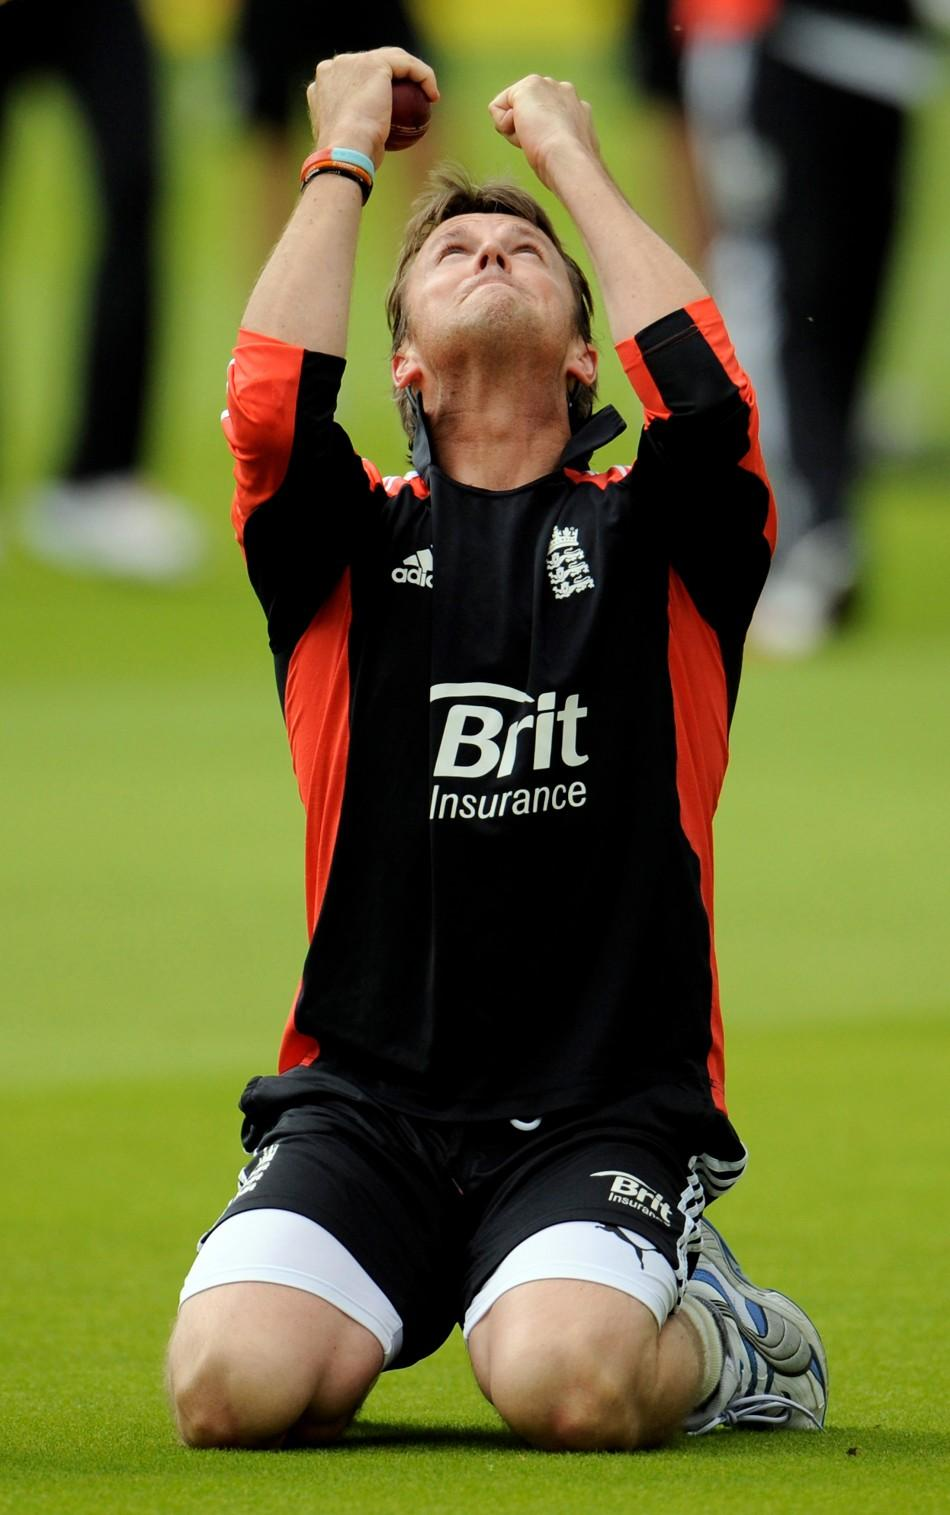 England's Swann reacts after taking a catch during a training session before Thursday's first cricket test match against India at Lord's cricket ground in London.